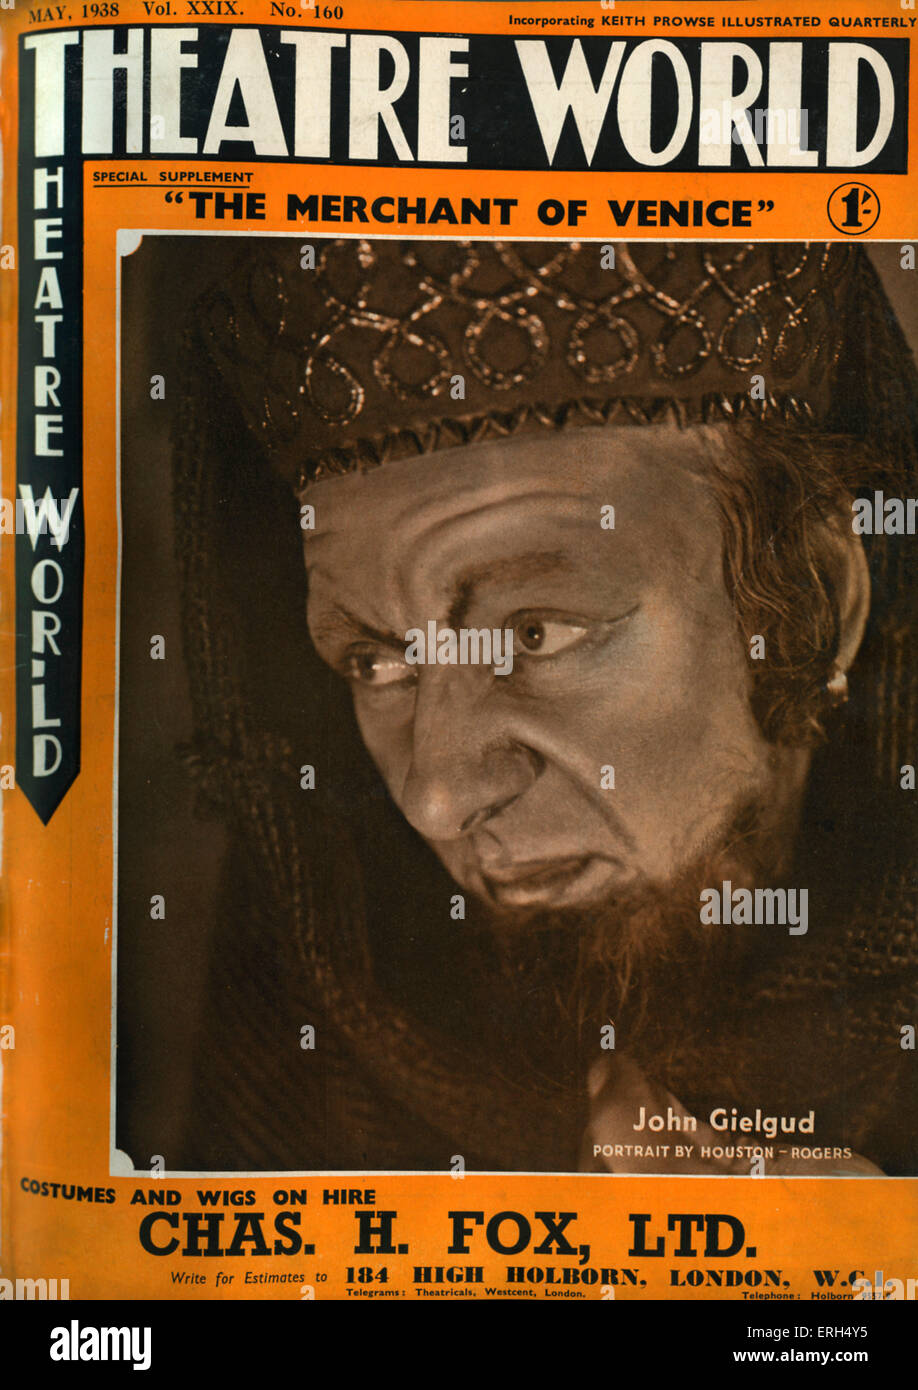 'The Merchant of Venice' by William Shakespeare with John Gielgud on the cover of Theatre World, May 1938,cover - Stock Image